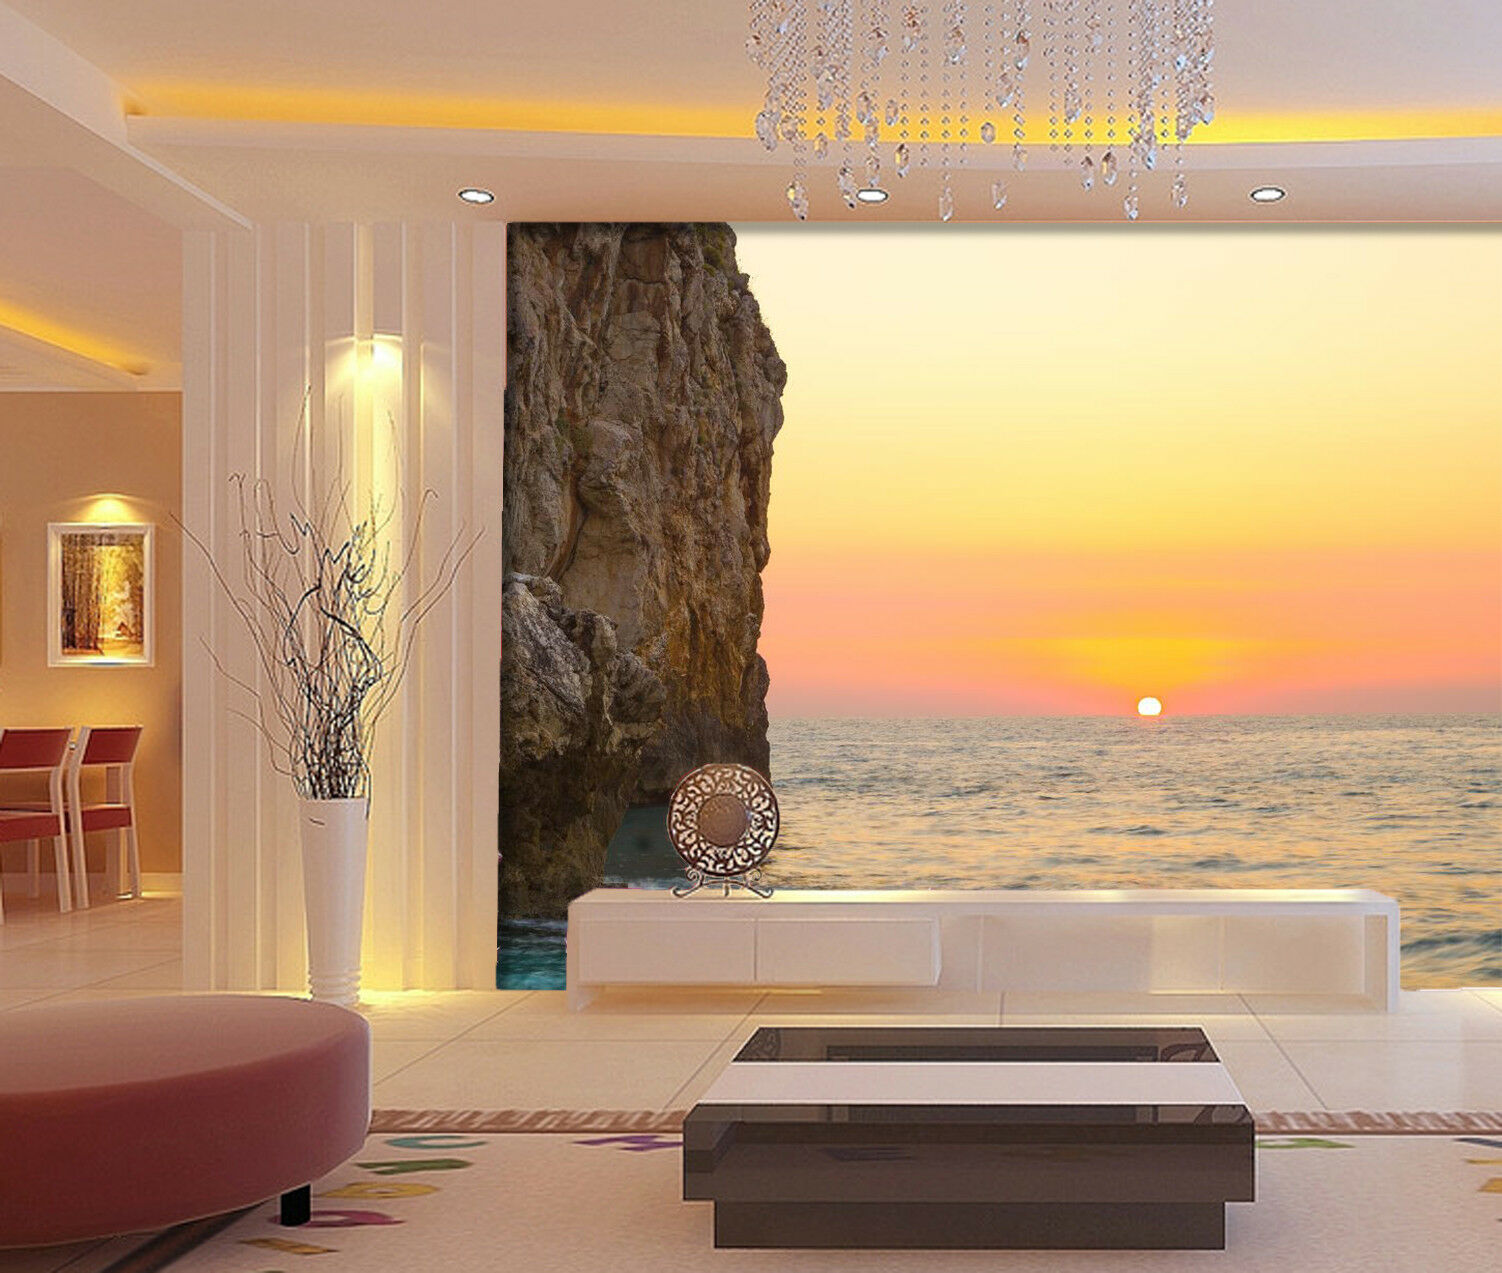 3D Sunset Sky Sky Sky 44 Wallpaper Murals Wall Print Wallpaper Mural AJ WALL AU Lemon 62ec74